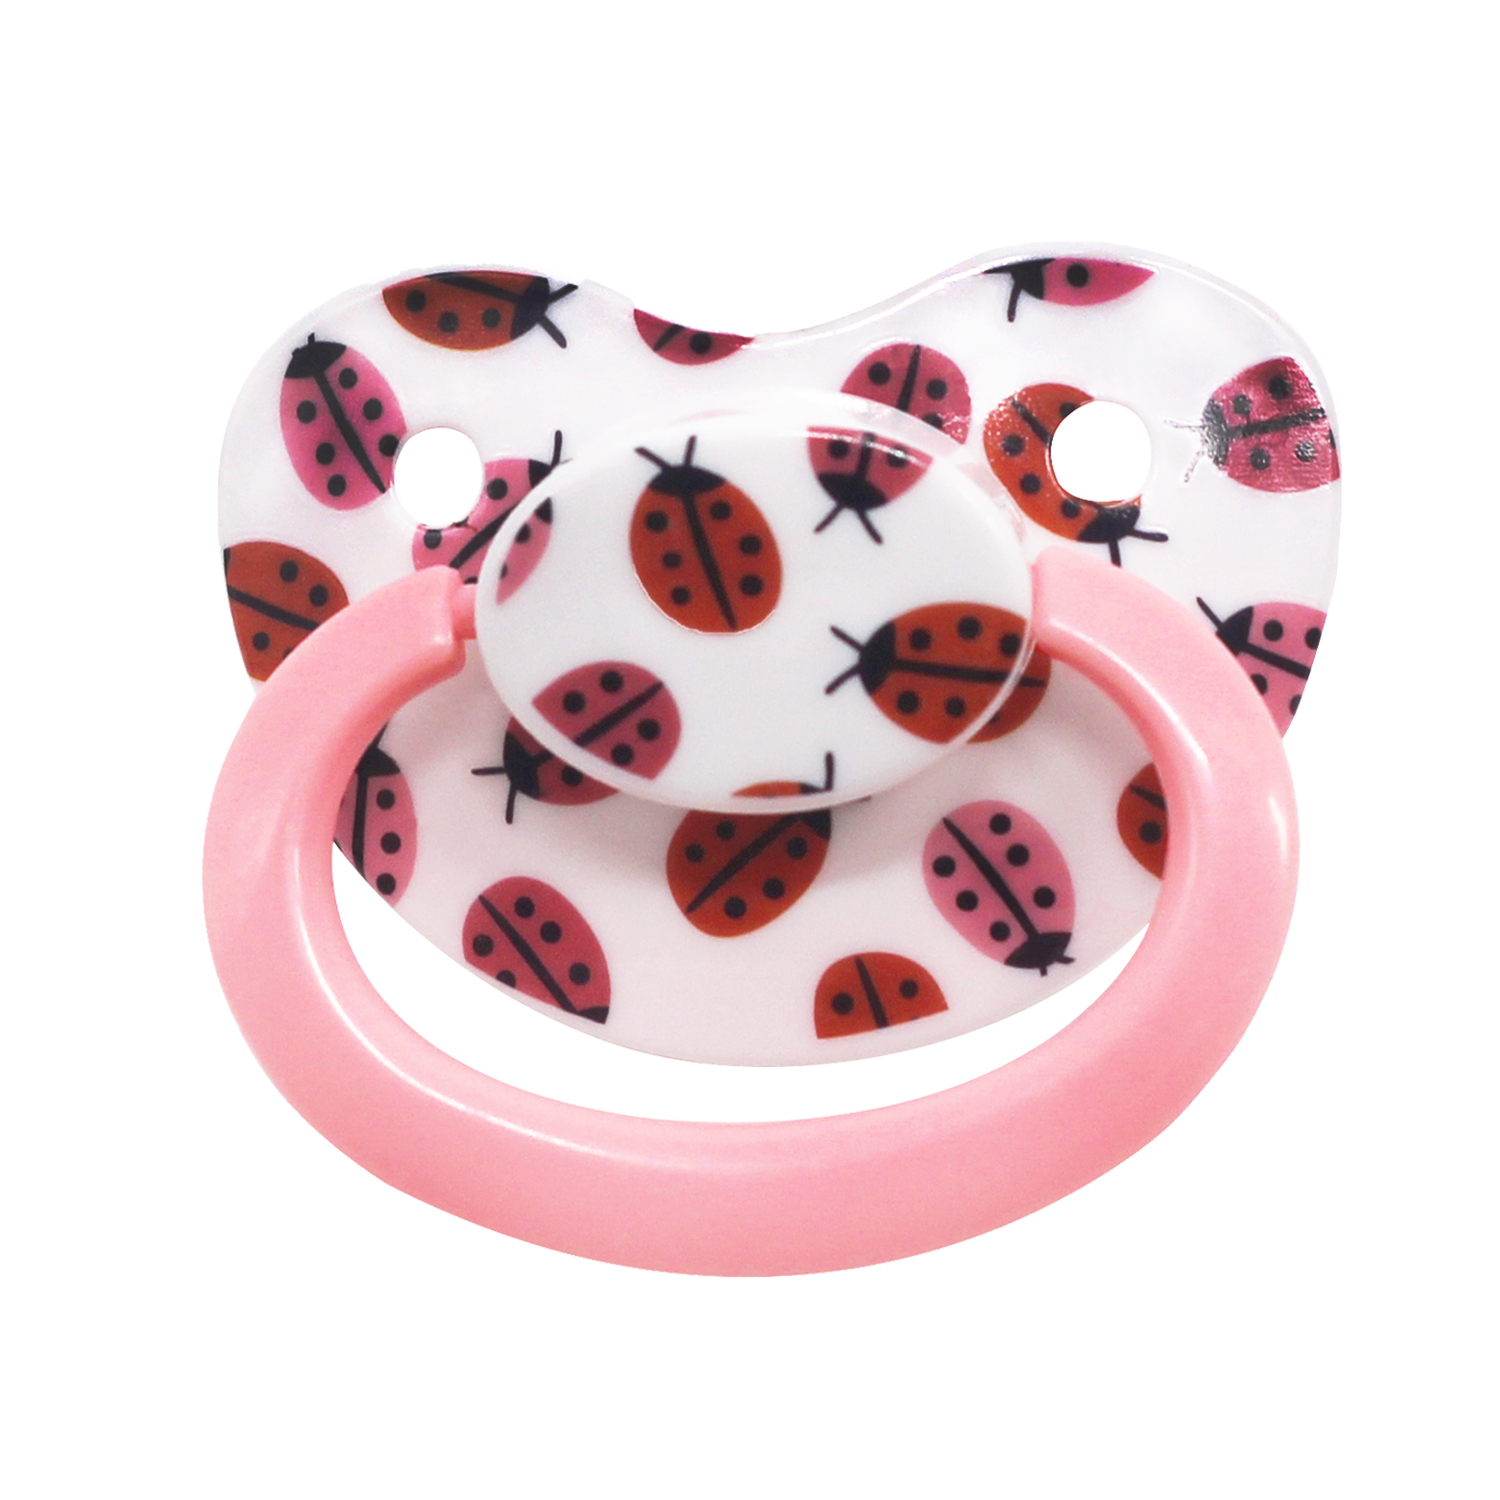 Ddlg Adult Pacifier Beetles Pattern Silicone Adult Plus Size Pacifier Little Space Daddys Girl ABDL Baby Pacifier